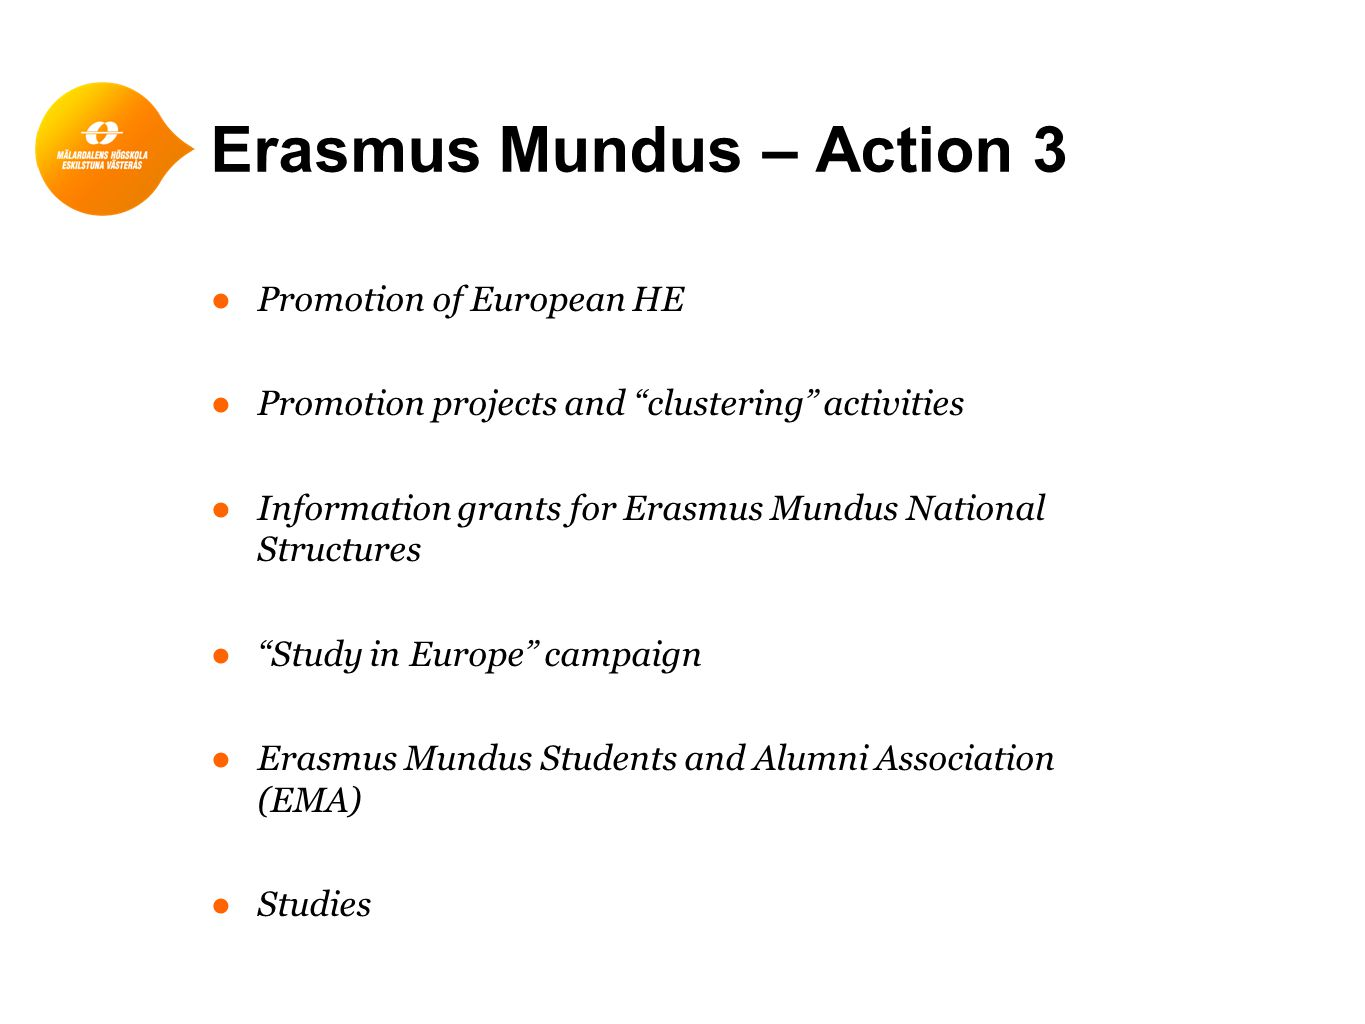 Erasmus Mundus – Action 3 ●Promotion of European HE ●Promotion projects and clustering activities ●Information grants for Erasmus Mundus National Structures ● Study in Europe campaign ●Erasmus Mundus Students and Alumni Association (EMA) ●Studies